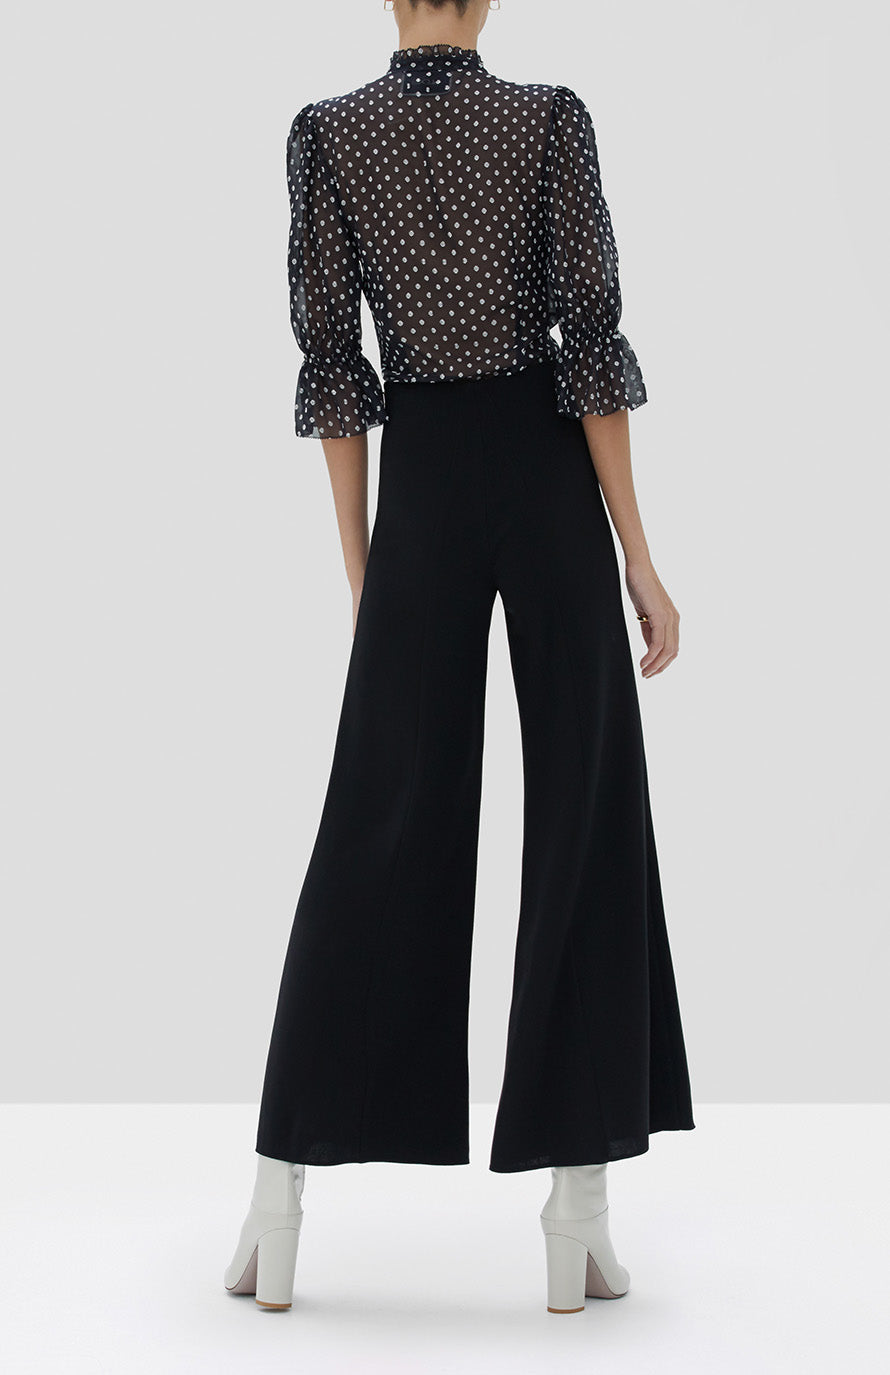 Alexis Calixte Top in Black Embroidered Dot and Ashden Pant in Black - Rear View